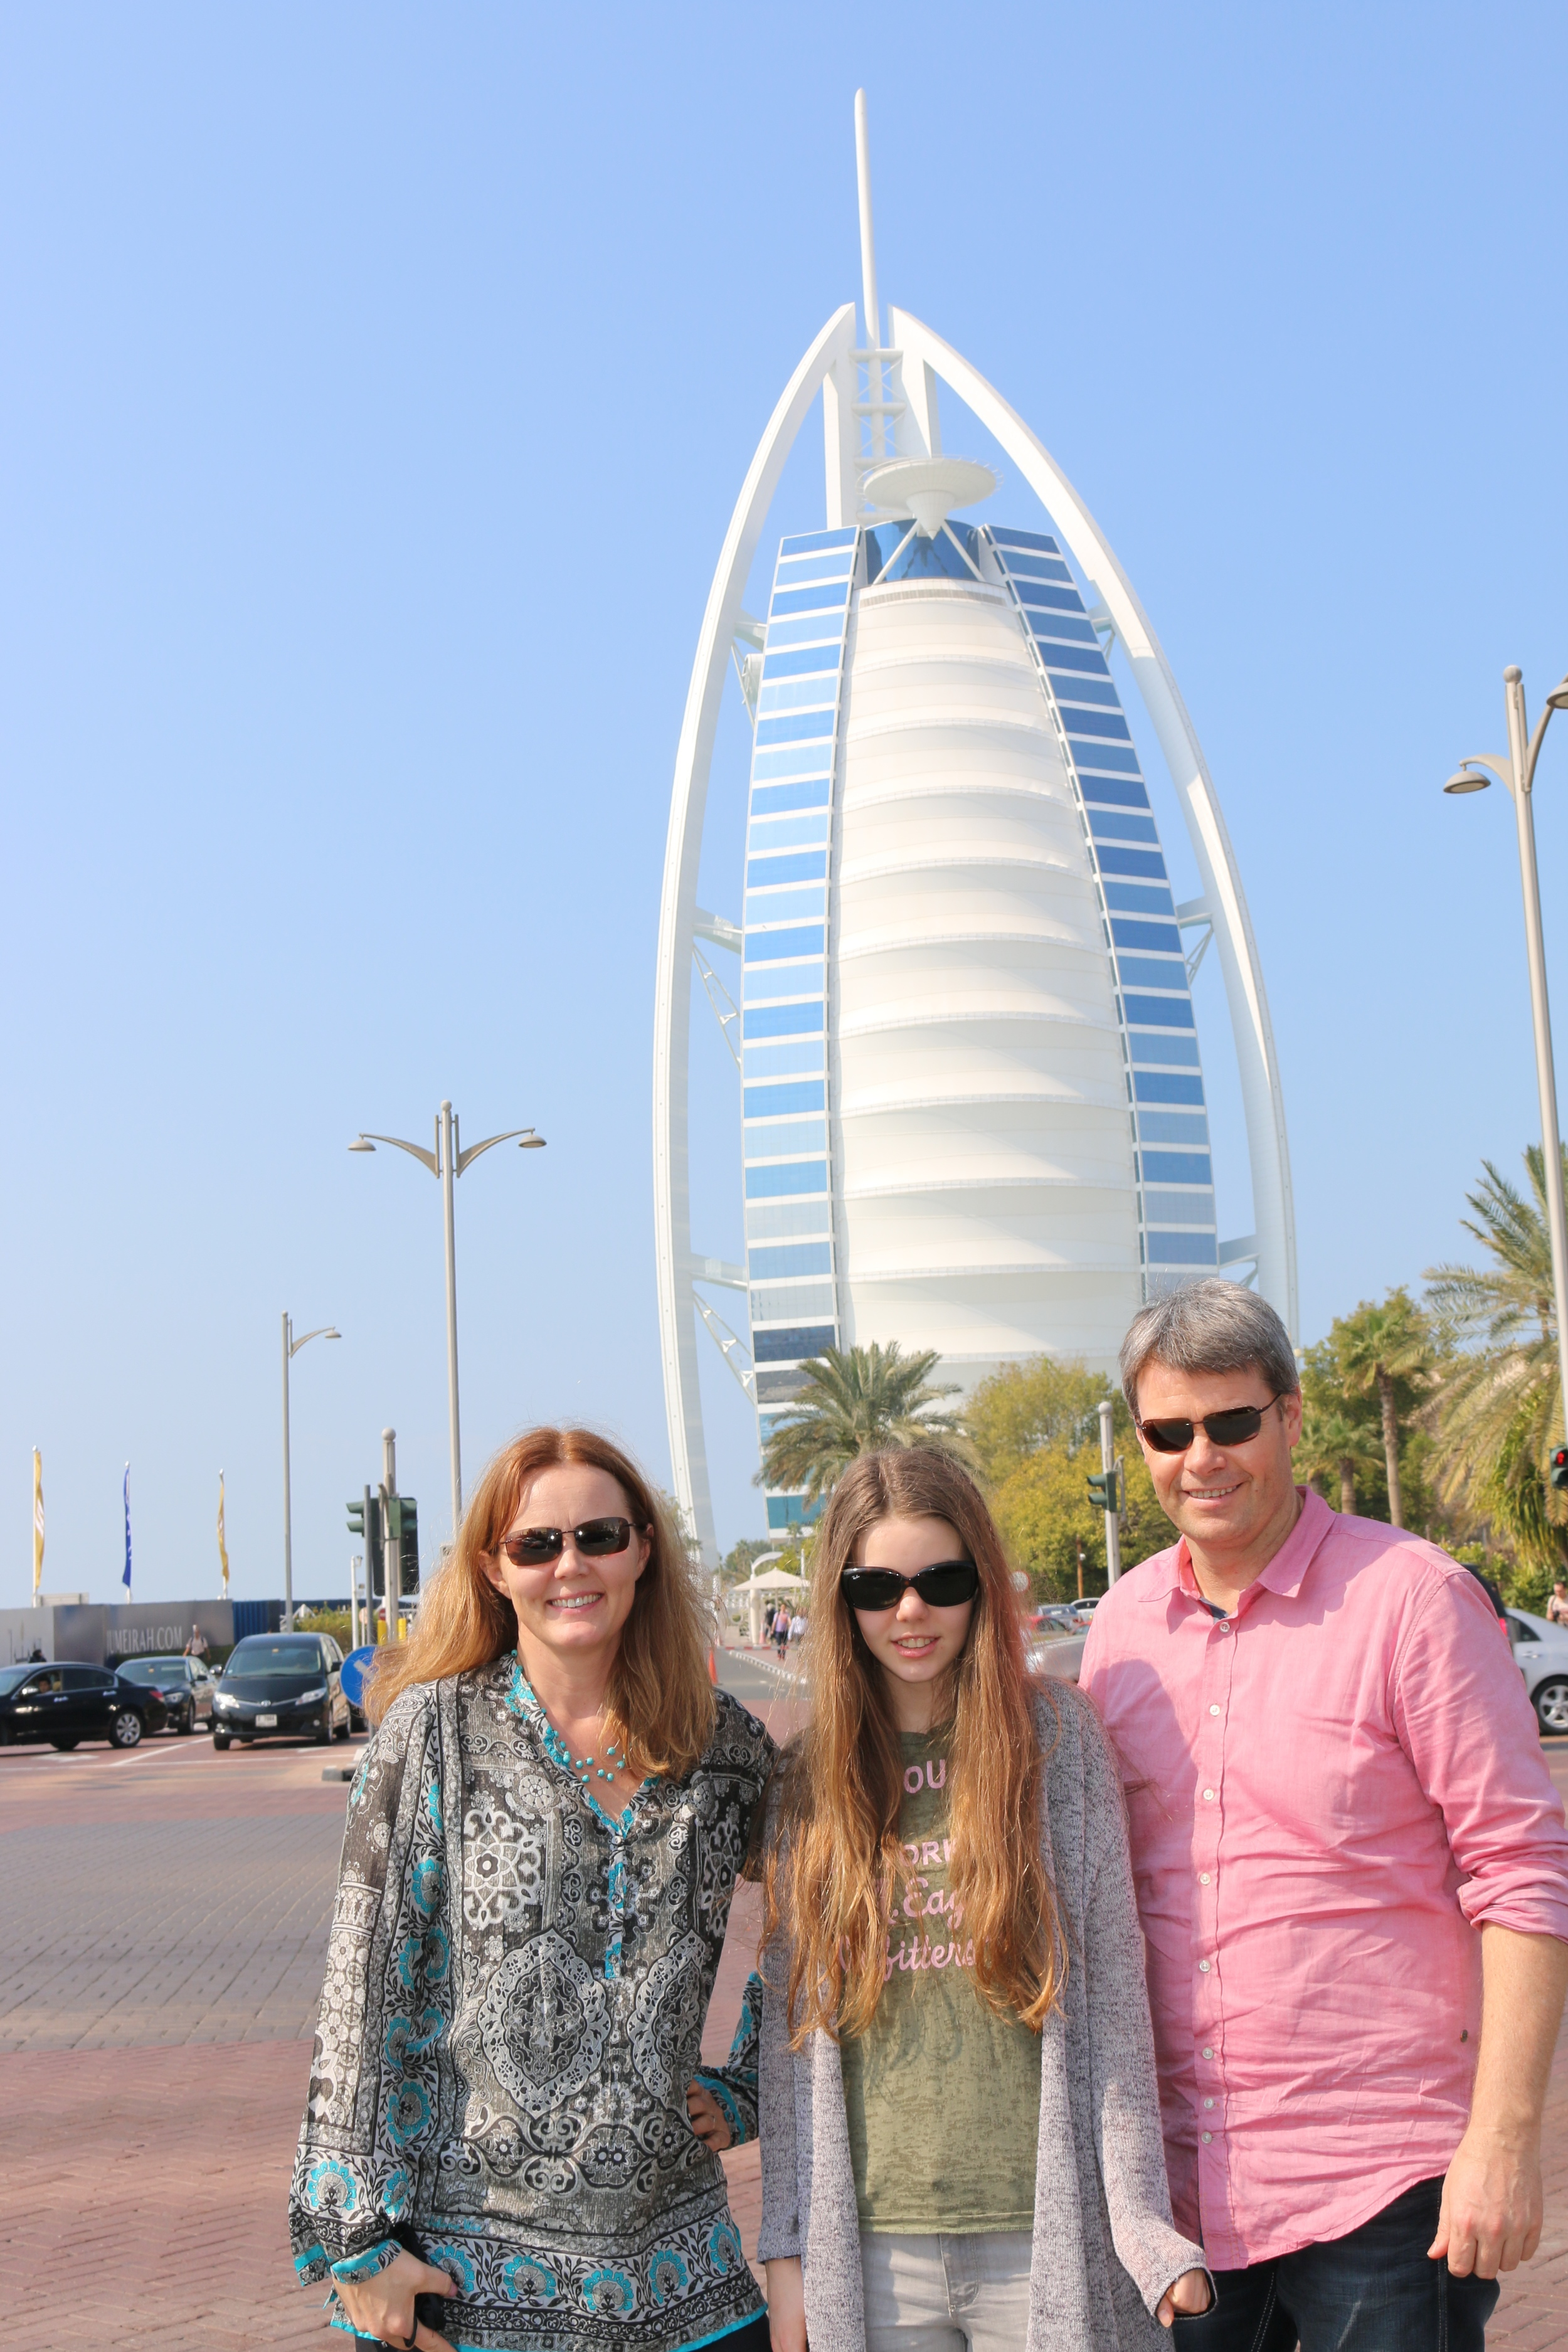 In front of the only 7 star hotel in the world